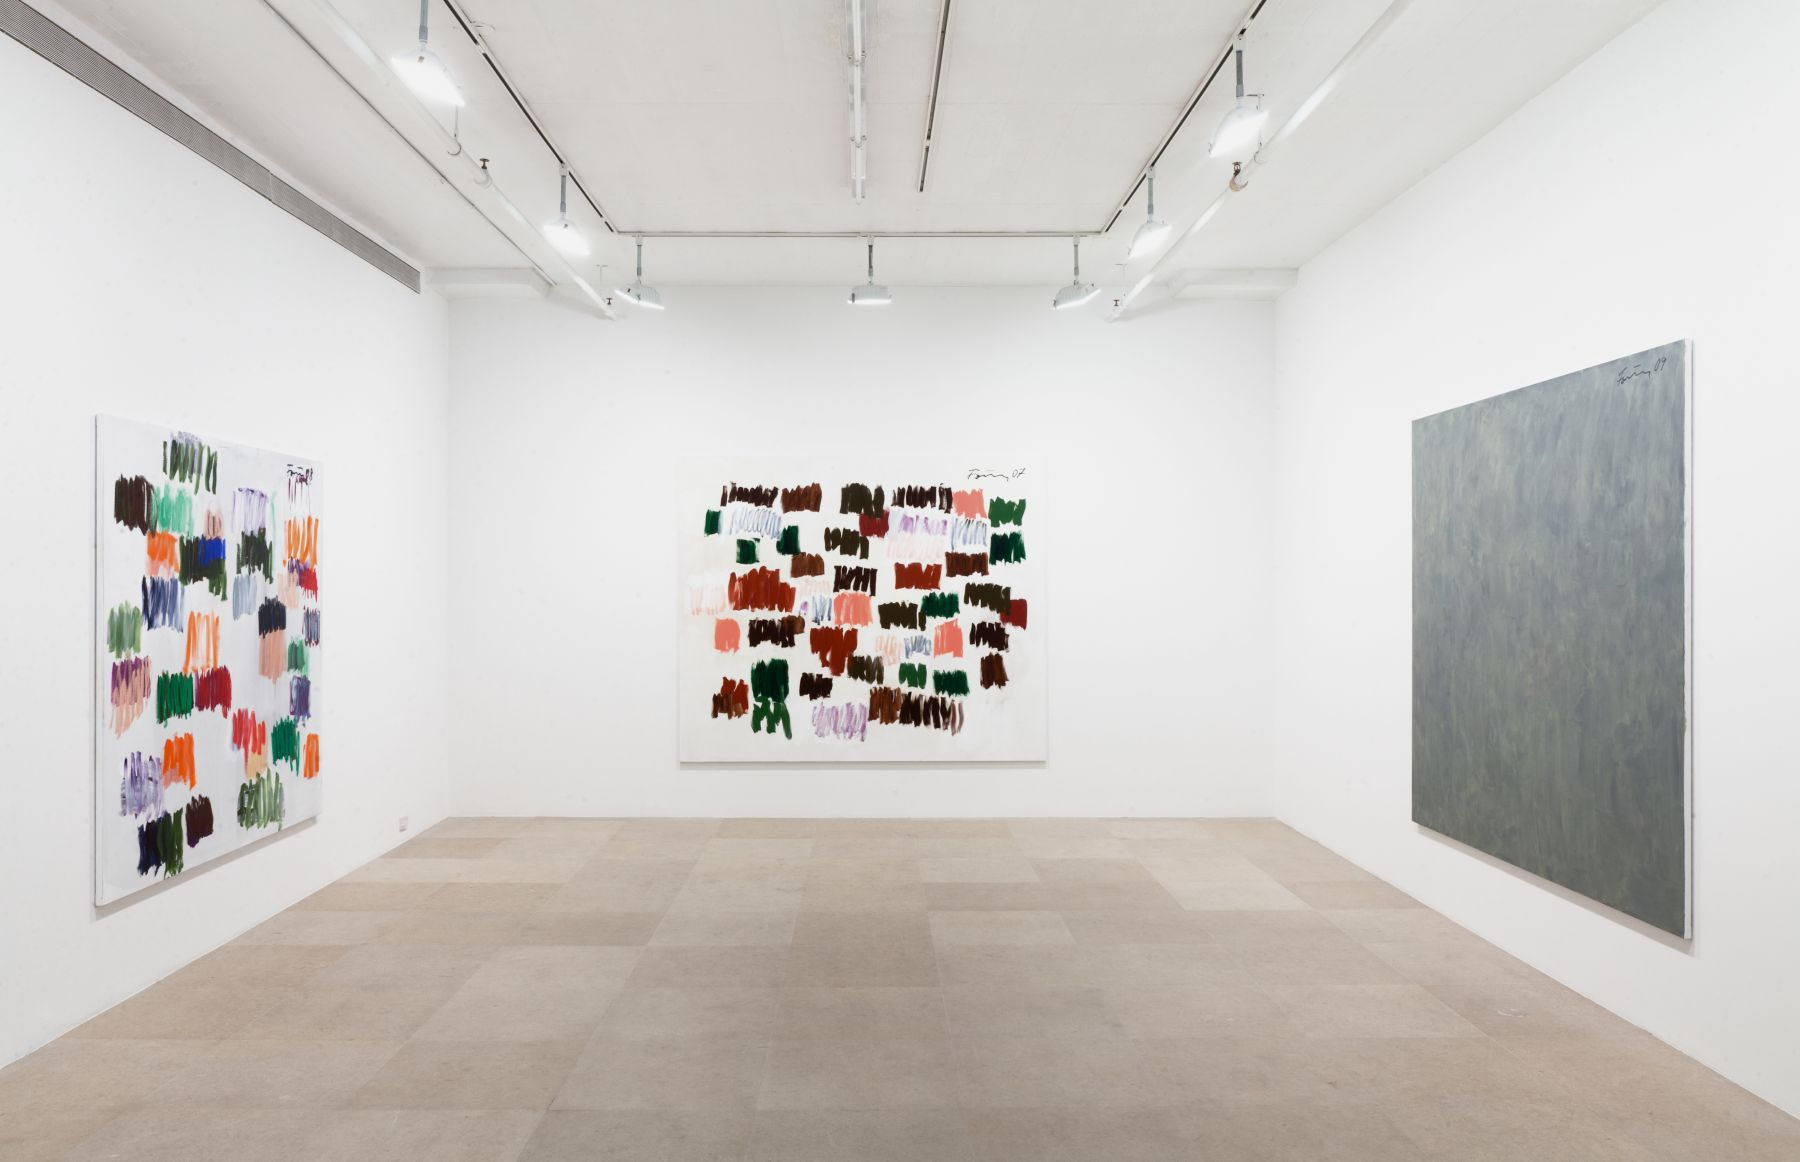 Gunther Forg, Installation view, Greene Naftali, New York, 2012